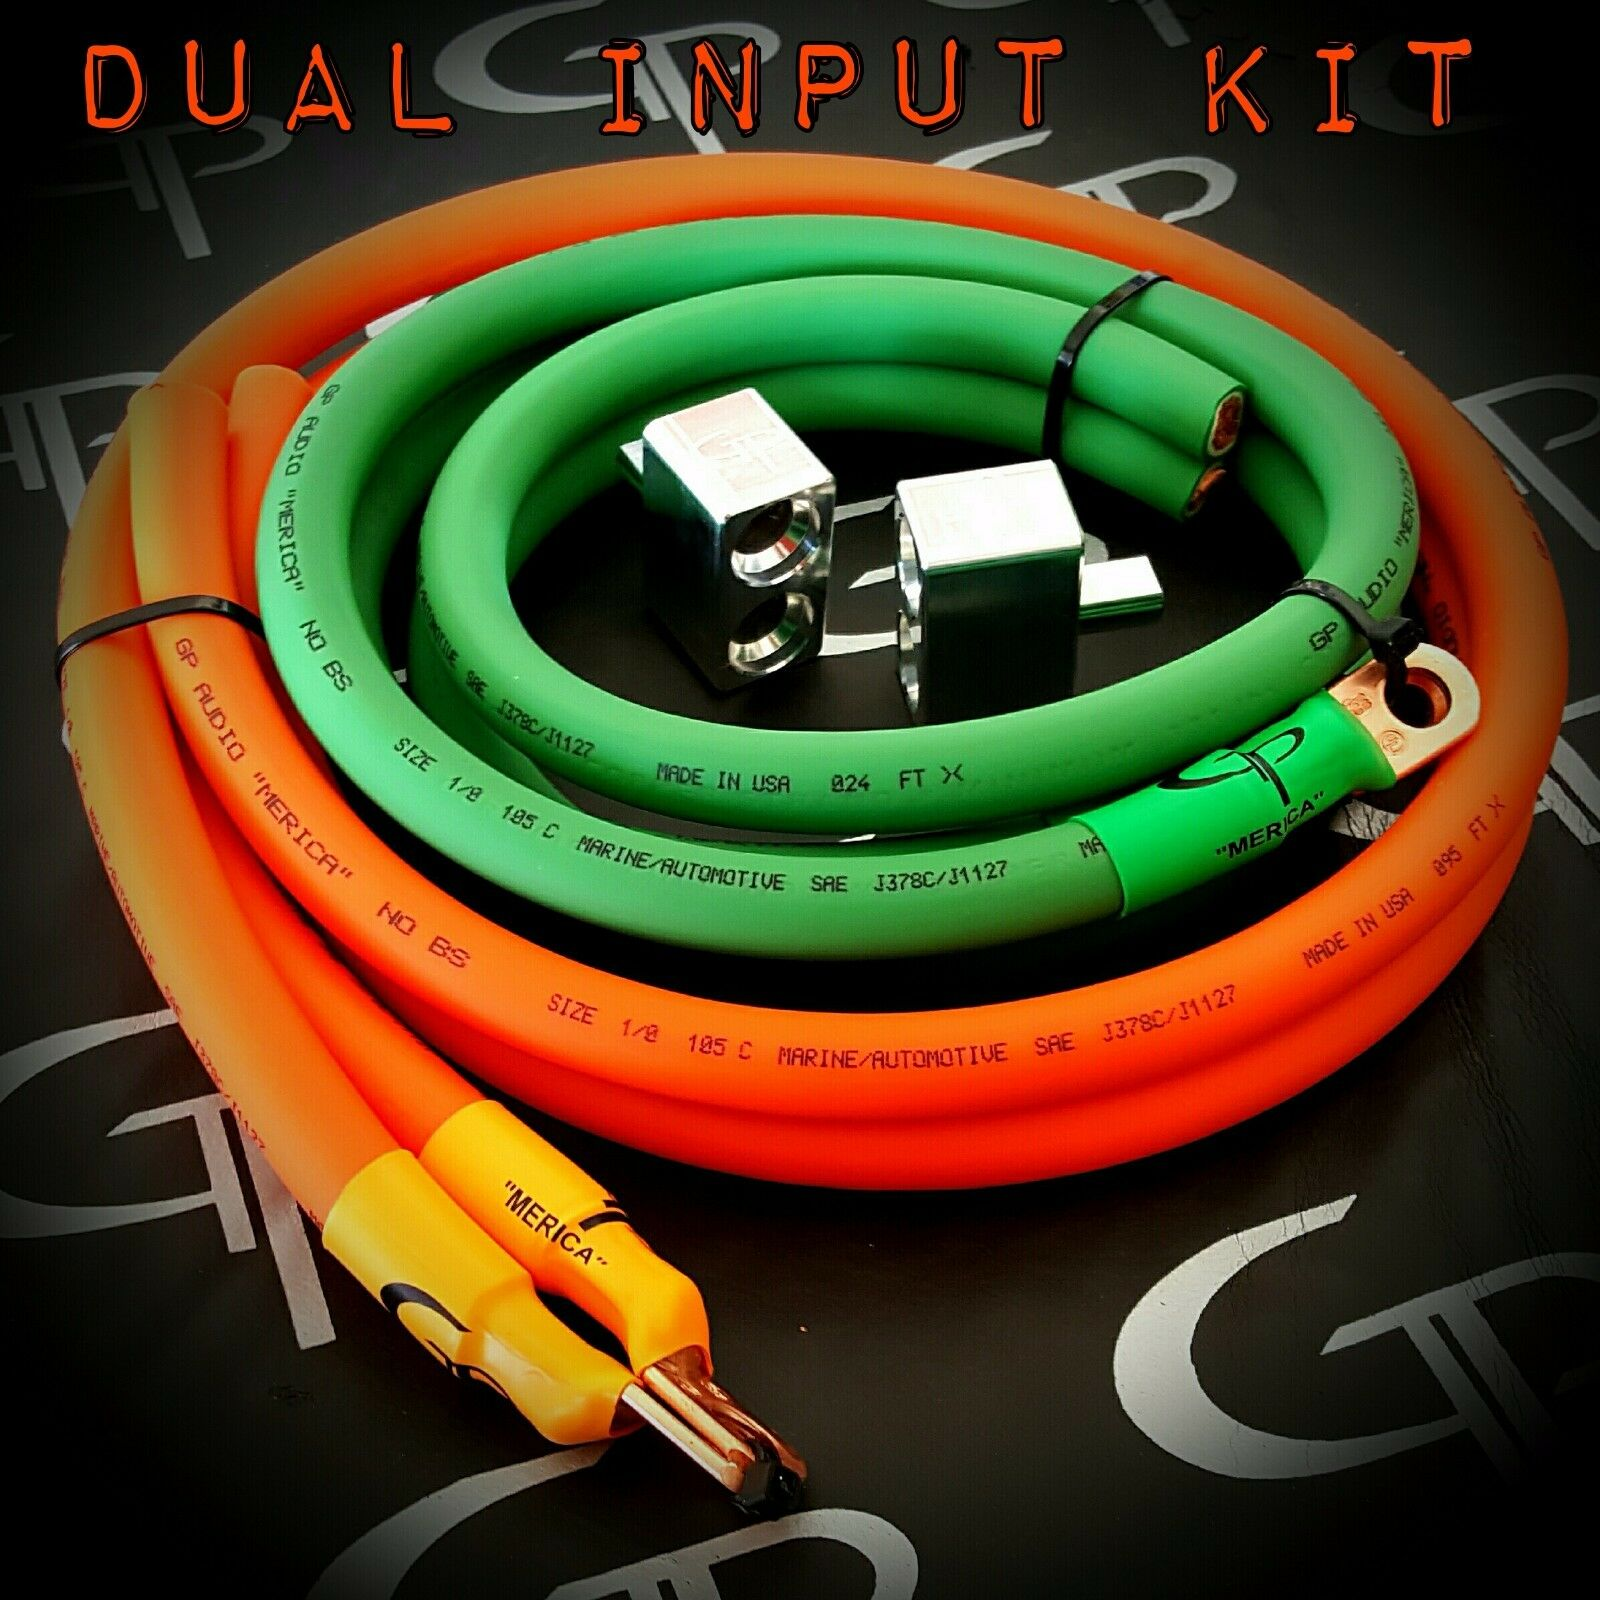 1 0 Awg Gauge Ofhc Dual Input Terminal Amp Kit Gp Car Audio Wiring 2channel Complete Amplifier Vehicle Wire Orange Of 4only 4 Available See More